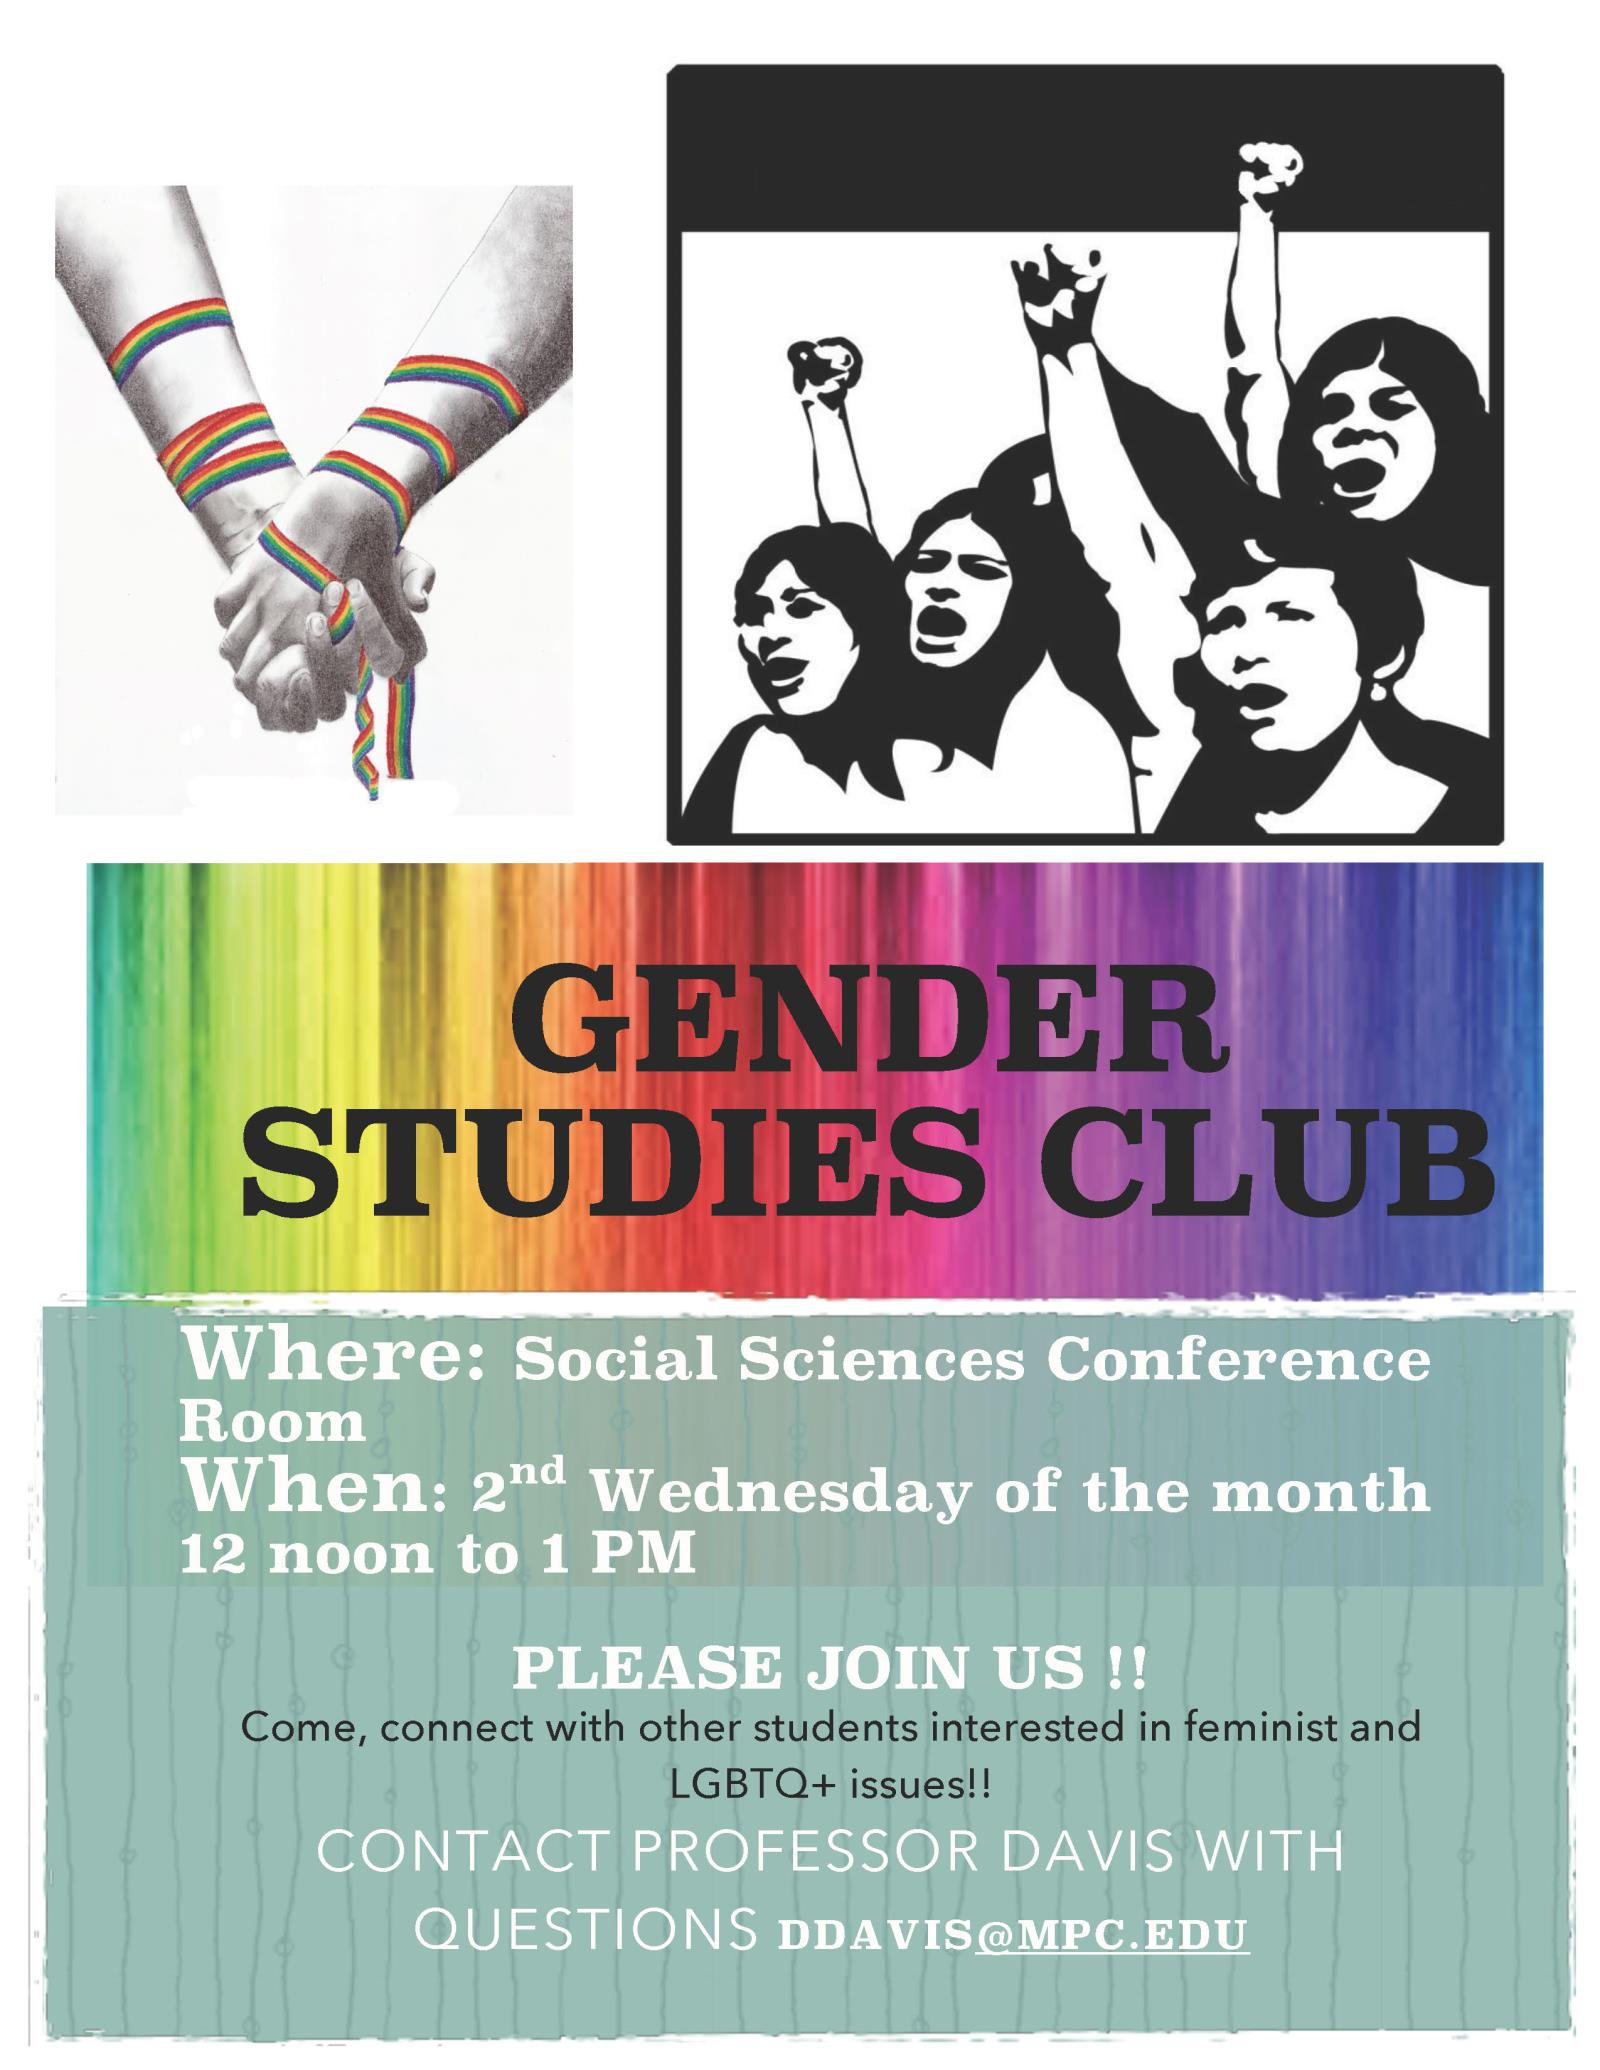 Gender Studies Club. Meets 2nd Wedesday of the month - Spring 2018, from 12-1pm in the Social Sciences Conference Room